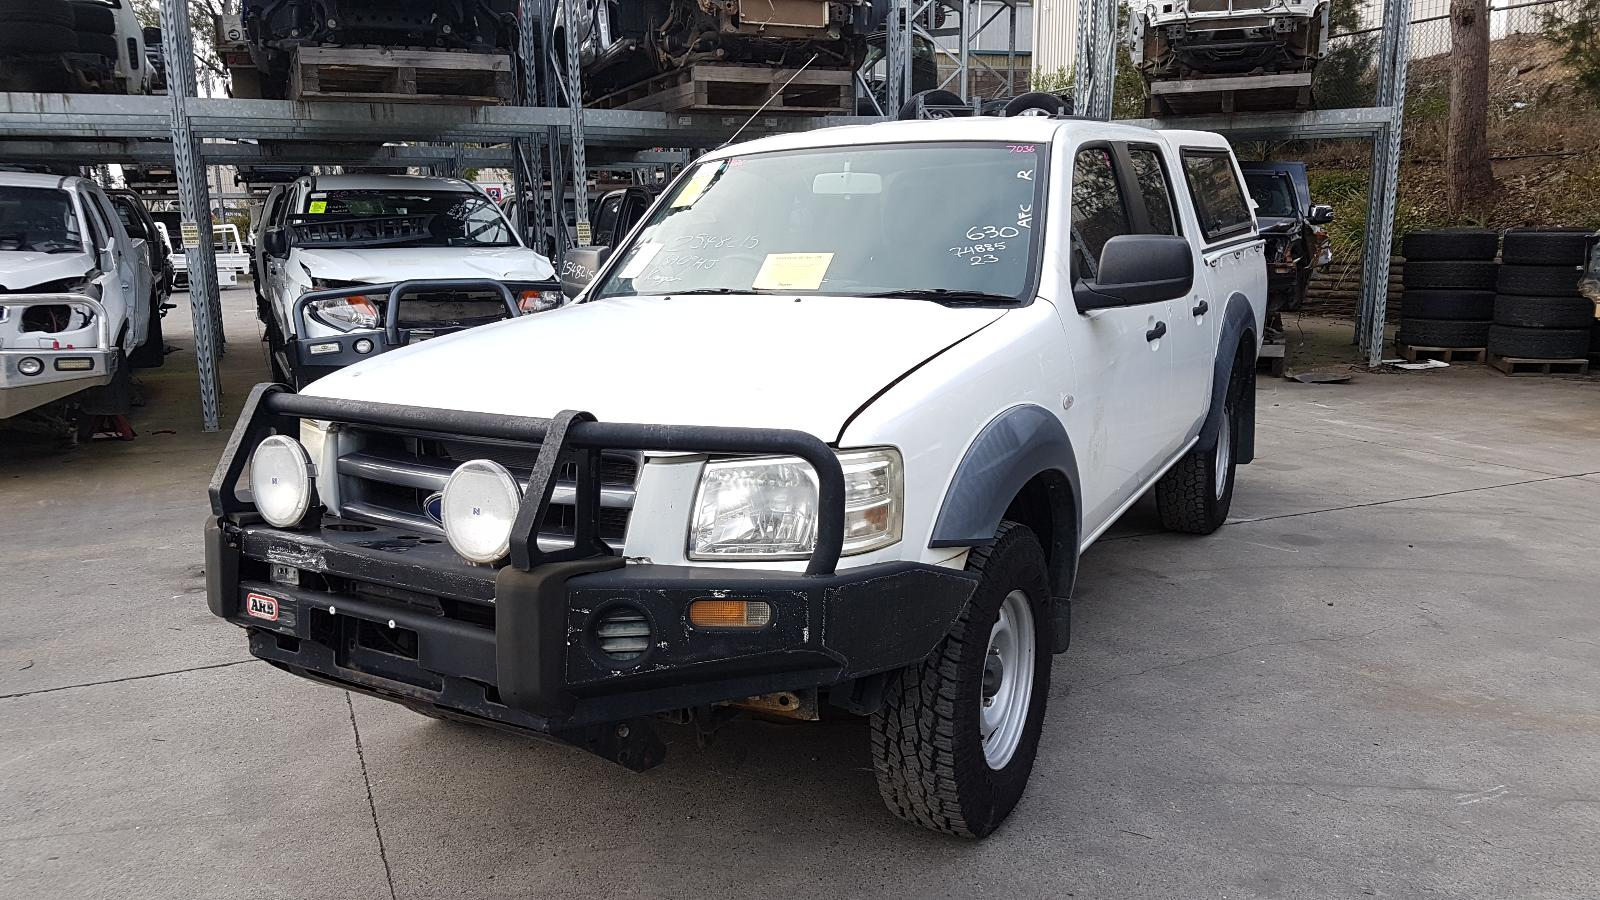 Image for a Ford Ranger 2007 4 Door Suv